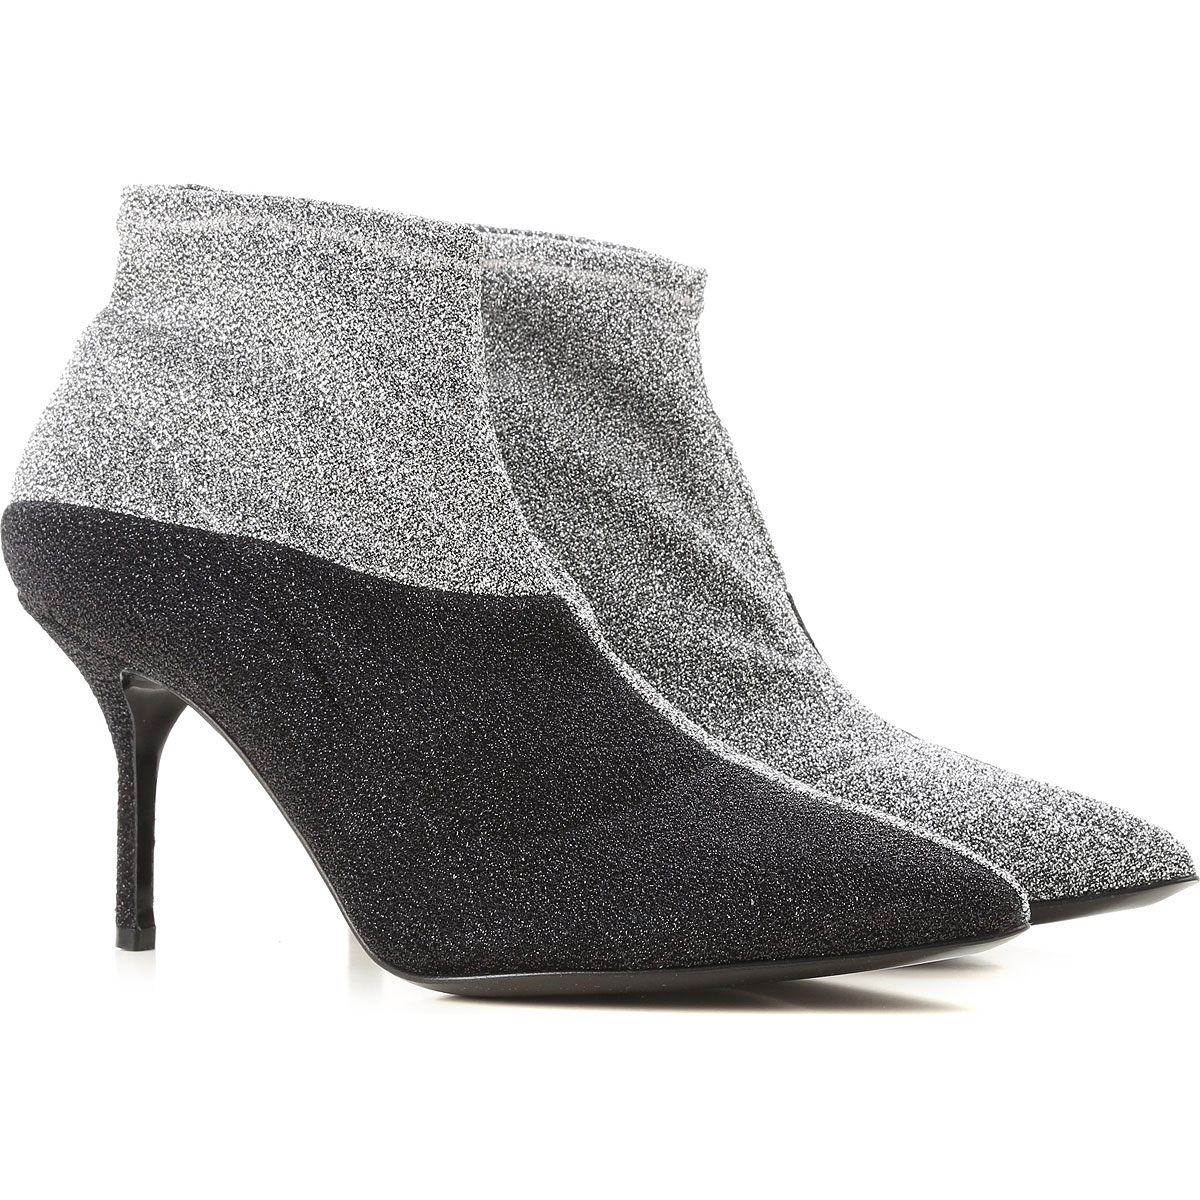 Image of Pierre Hardy Boots for Women, Booties, Silver, polyester, 2017, 10 6 7 8 9